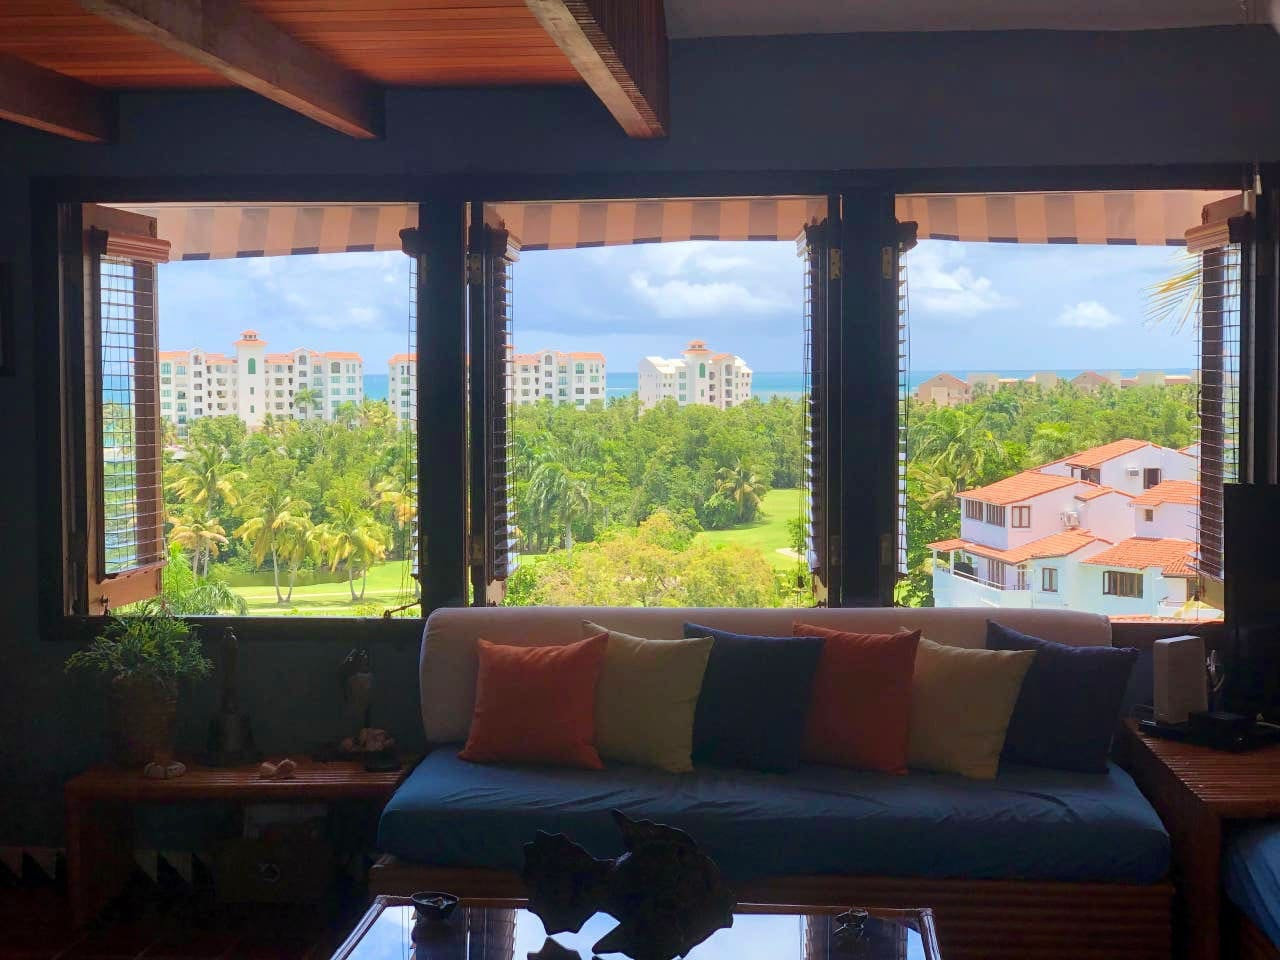 Welcome to our small piece of Paradise! Wake up to this stunning view of the Atlantic Ocean and Rio Mar's Ocean Golf Course.